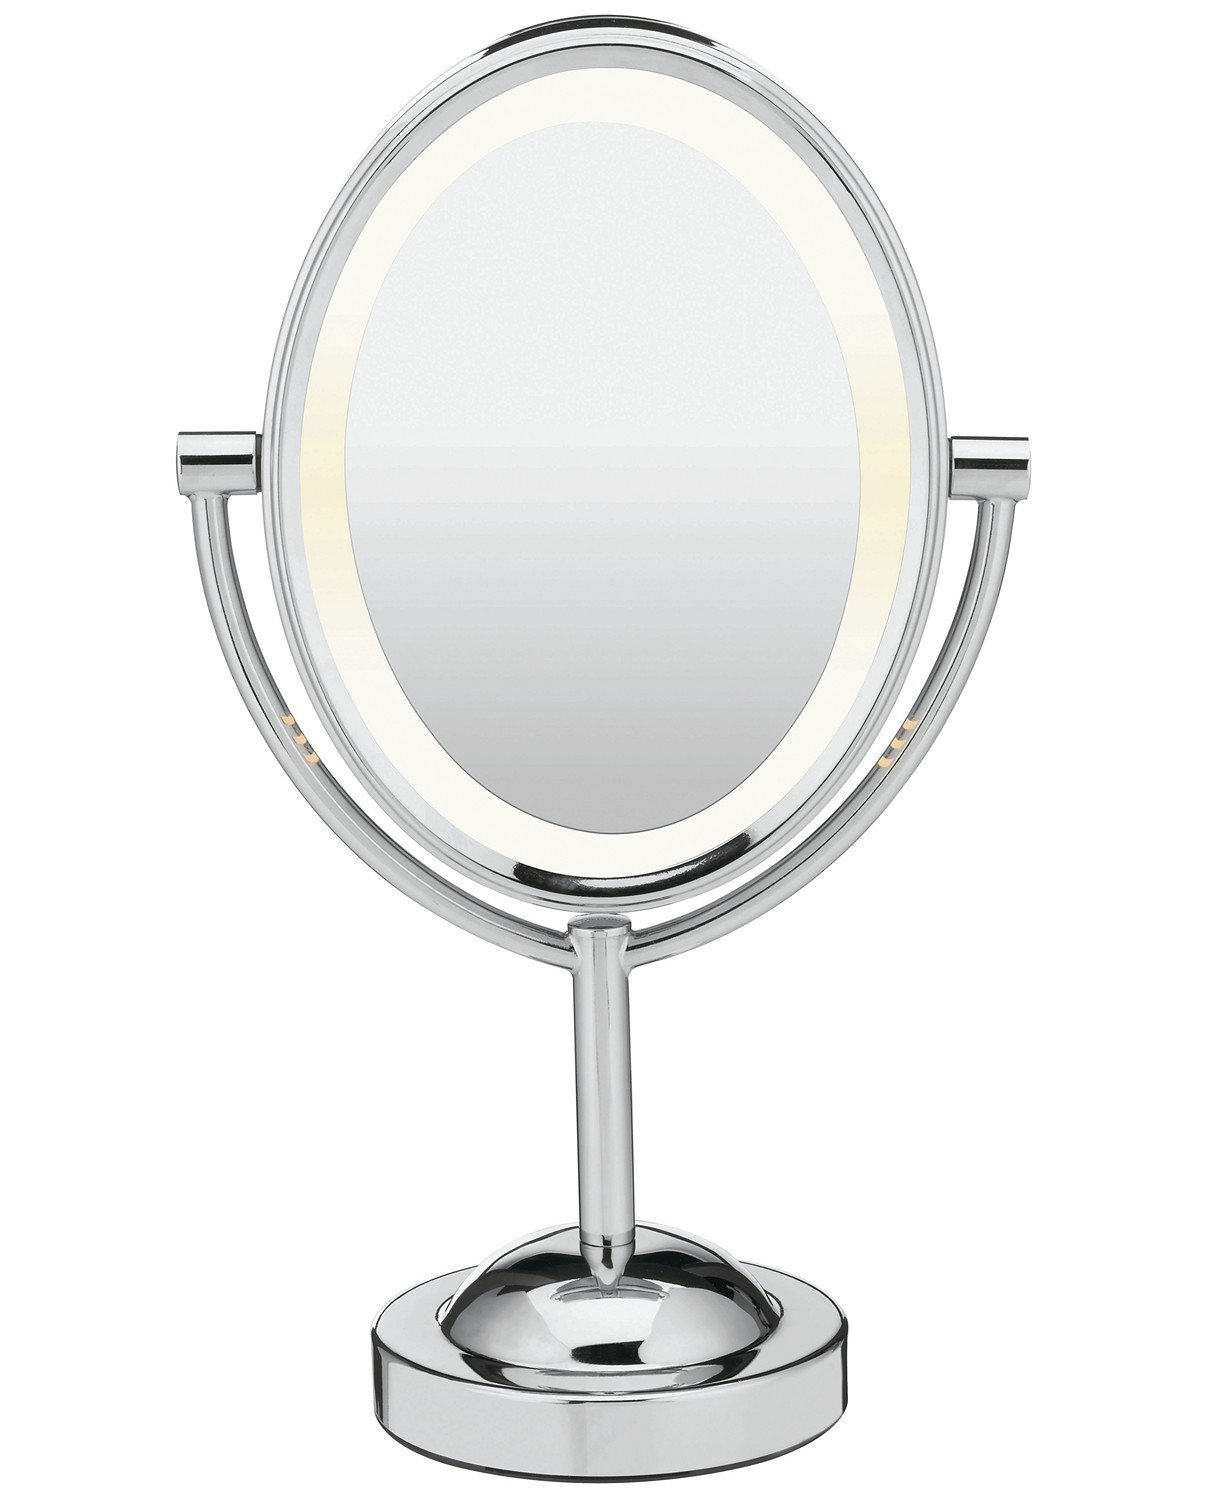 Conair Oval Polished Chrome Double-Sided Makeup Mirror